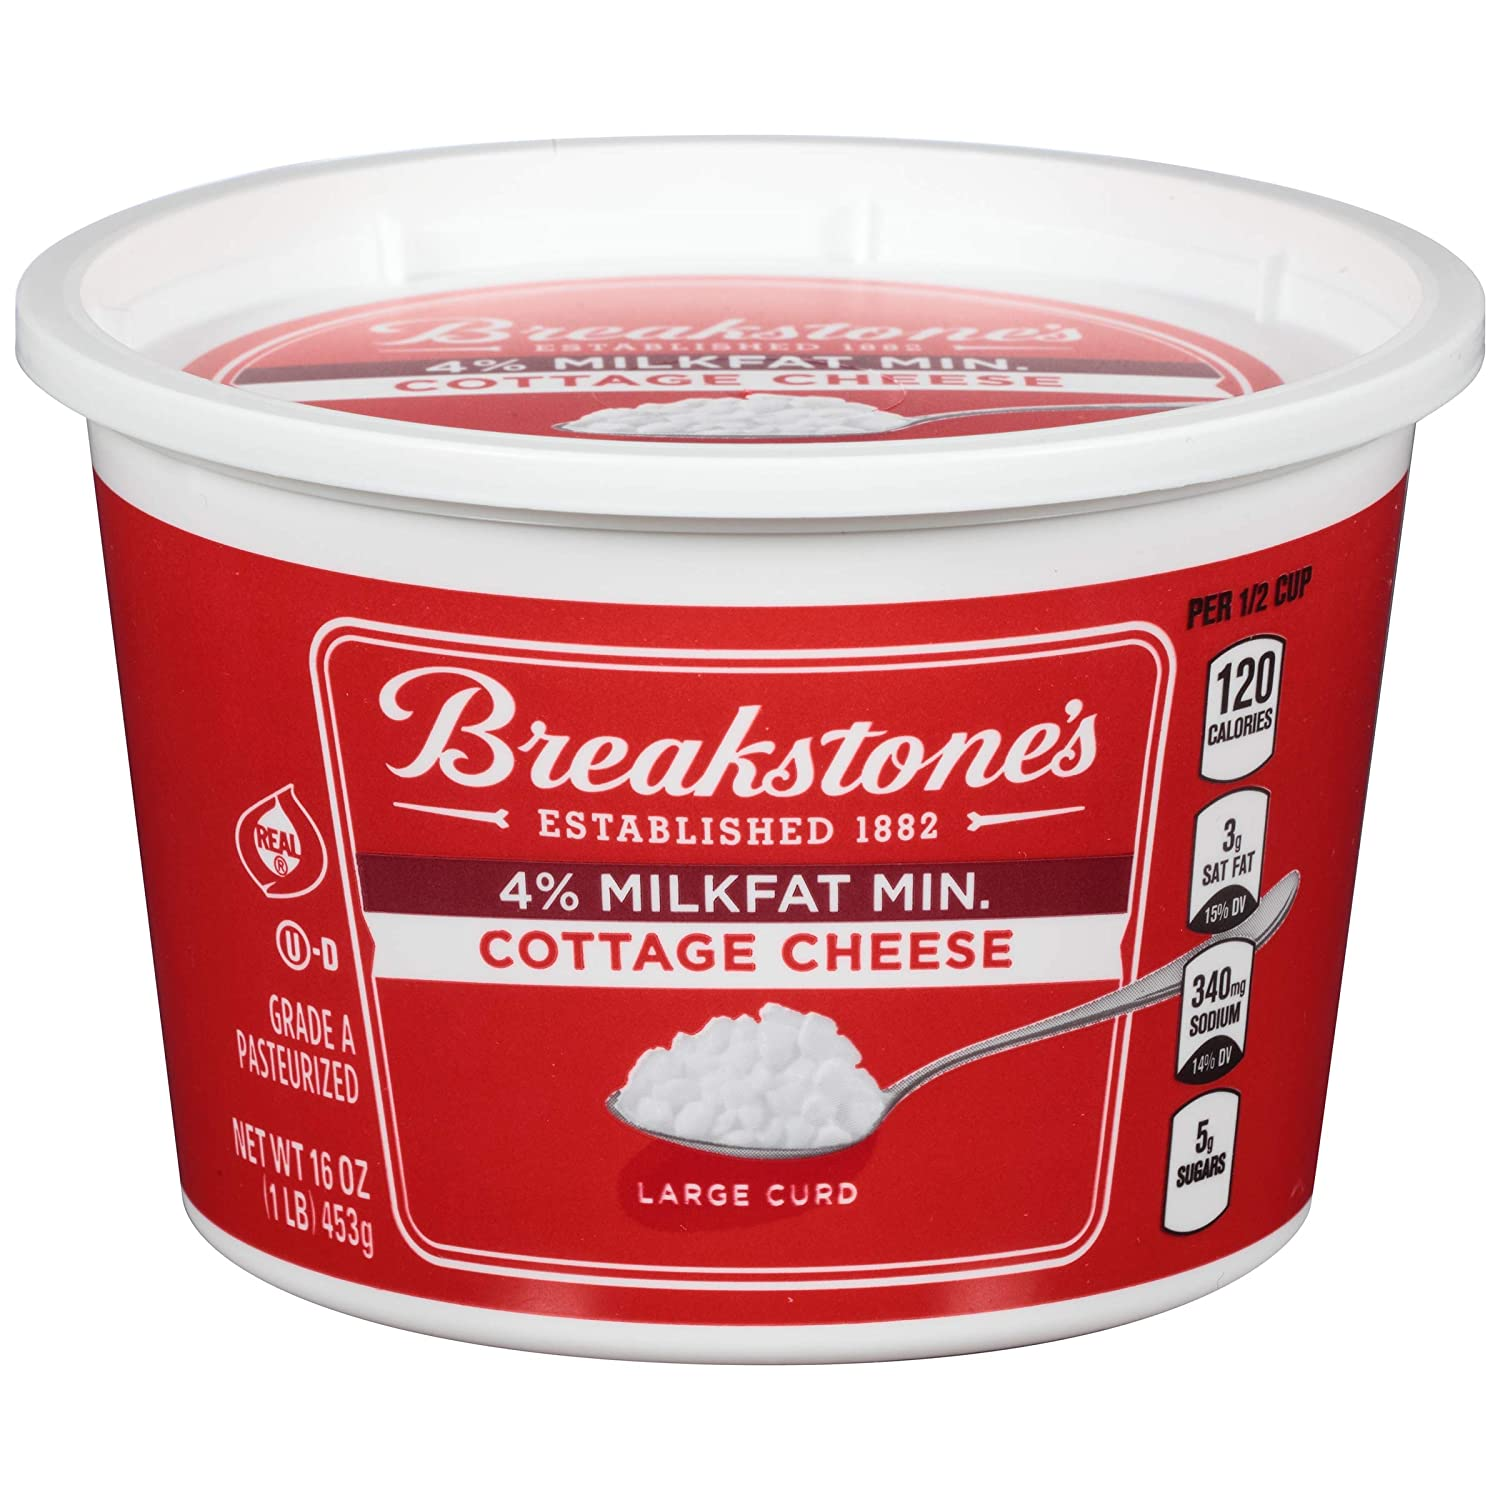 Astonishing Breakstones Large Curd 4 Milk Fat Min Cottage Cheese 16 Download Free Architecture Designs Rallybritishbridgeorg